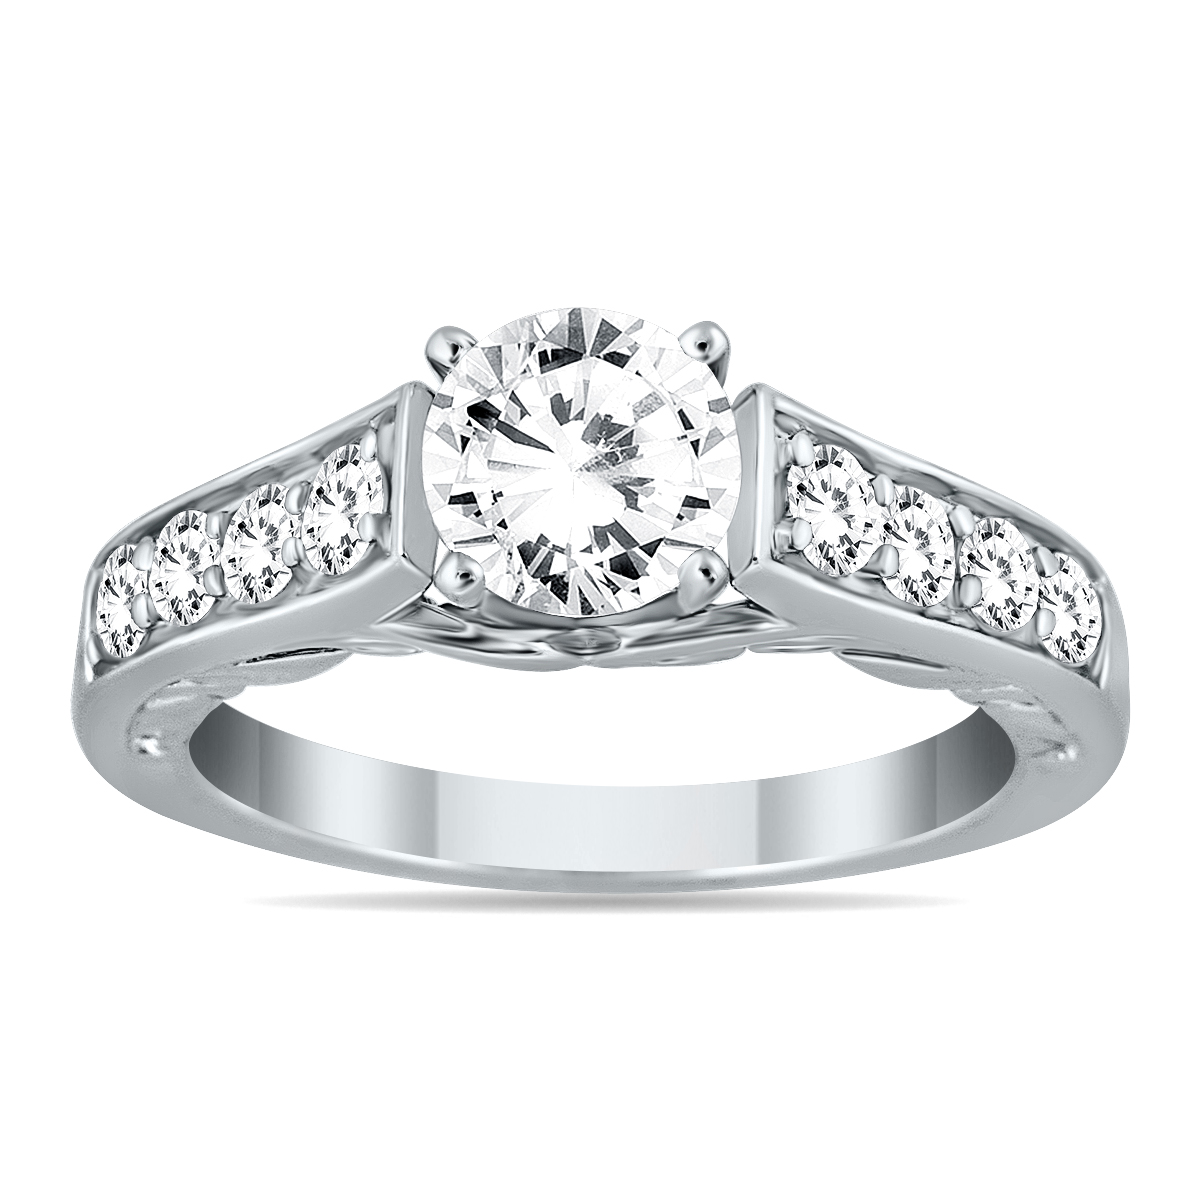 AGS Certified 1 1/2 Carat TW Diamond Ring in 14K White Gold (I-J Color, I2-I3 Clarity)